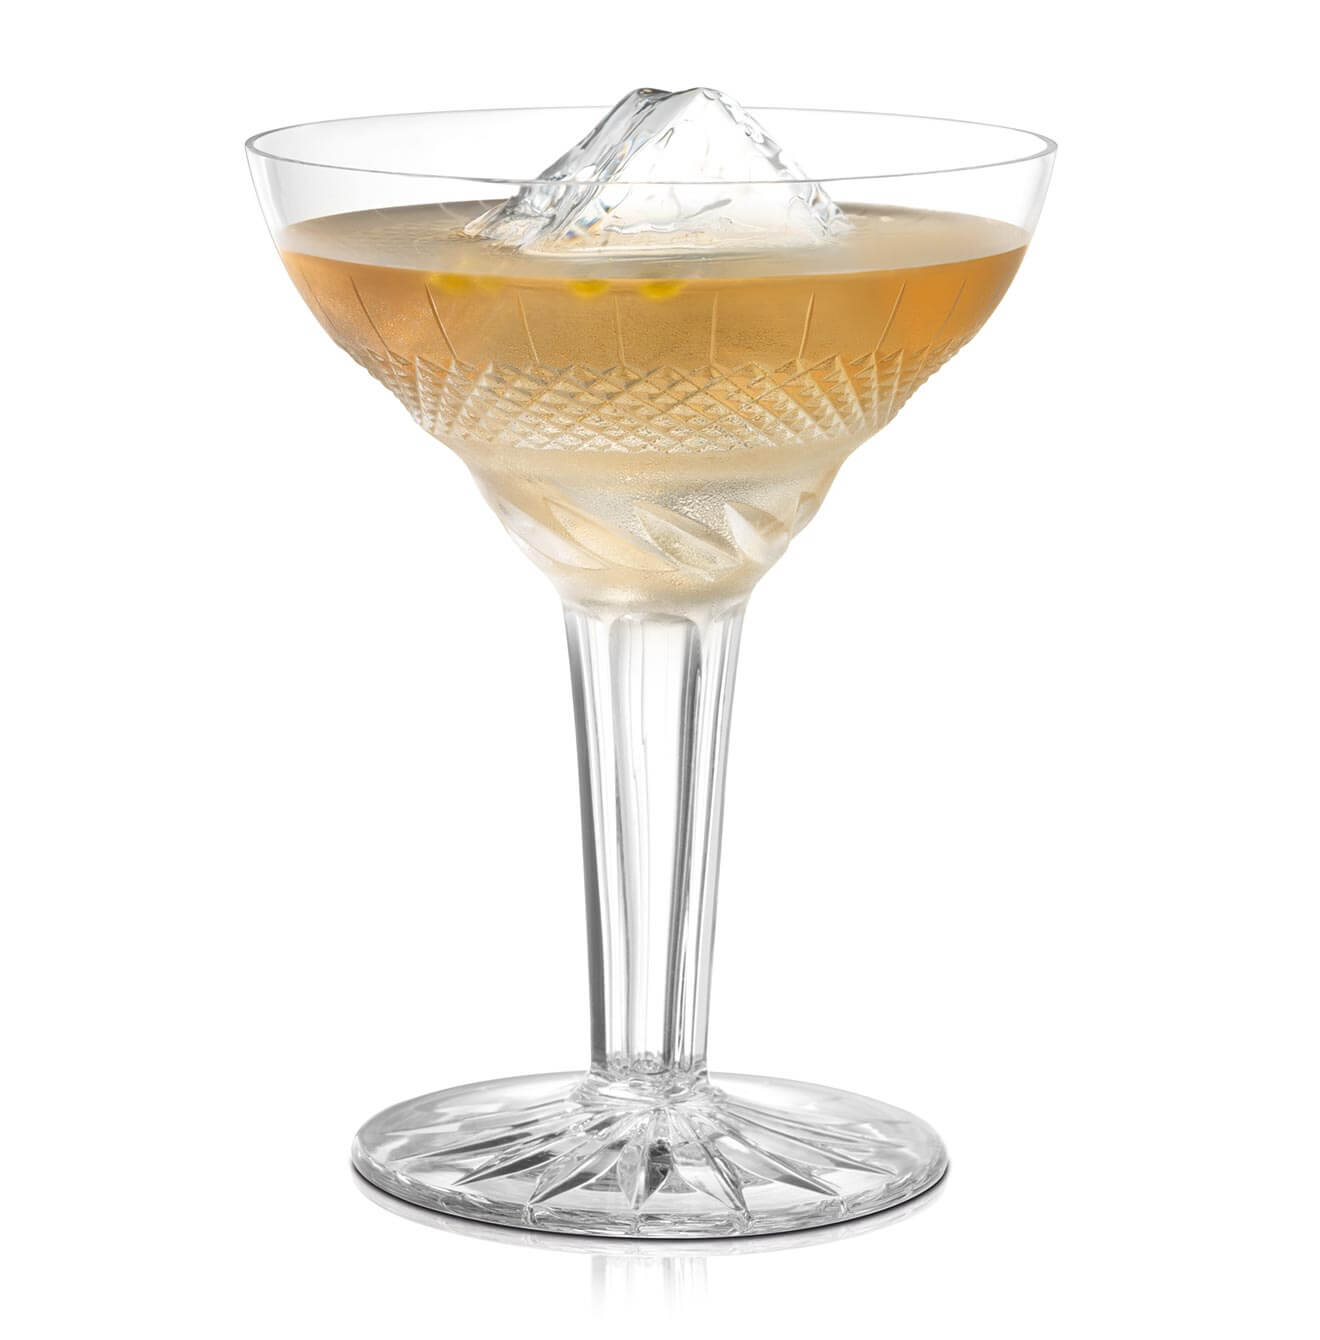 Clarita, The Winning Cocktail